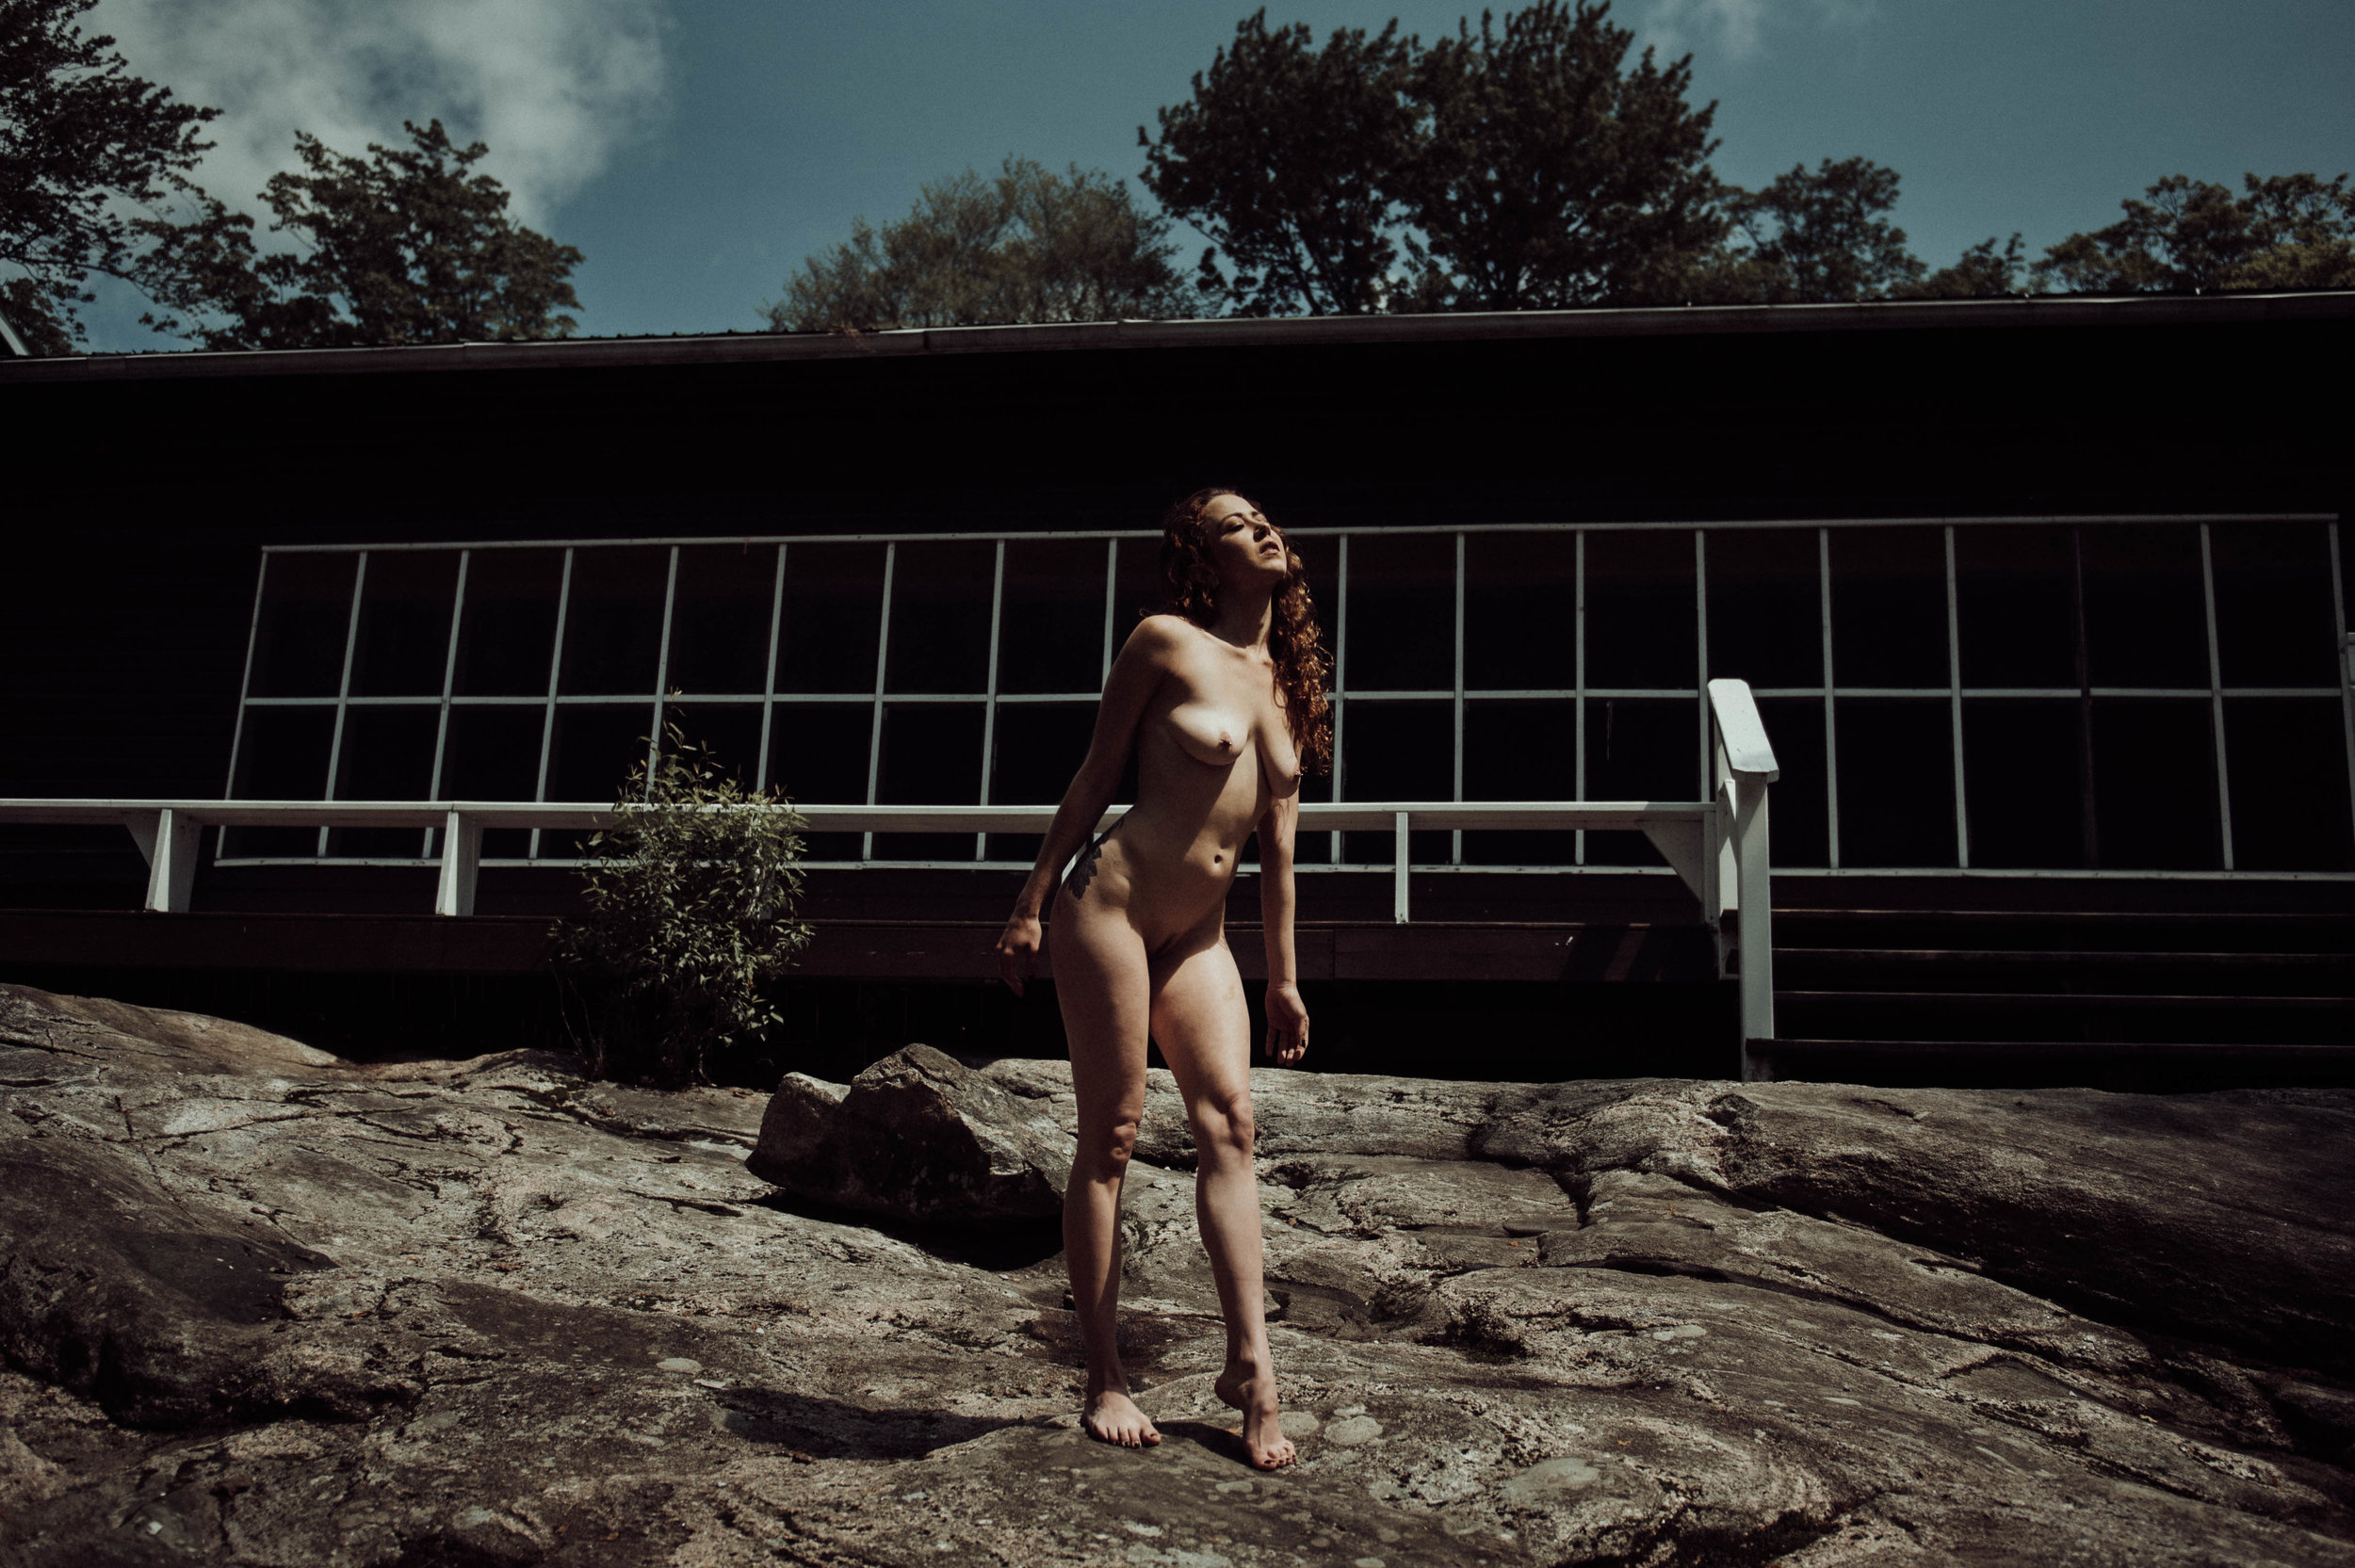 Erotic nude outdoors photography Taylor Oakes Boudoir photography New York